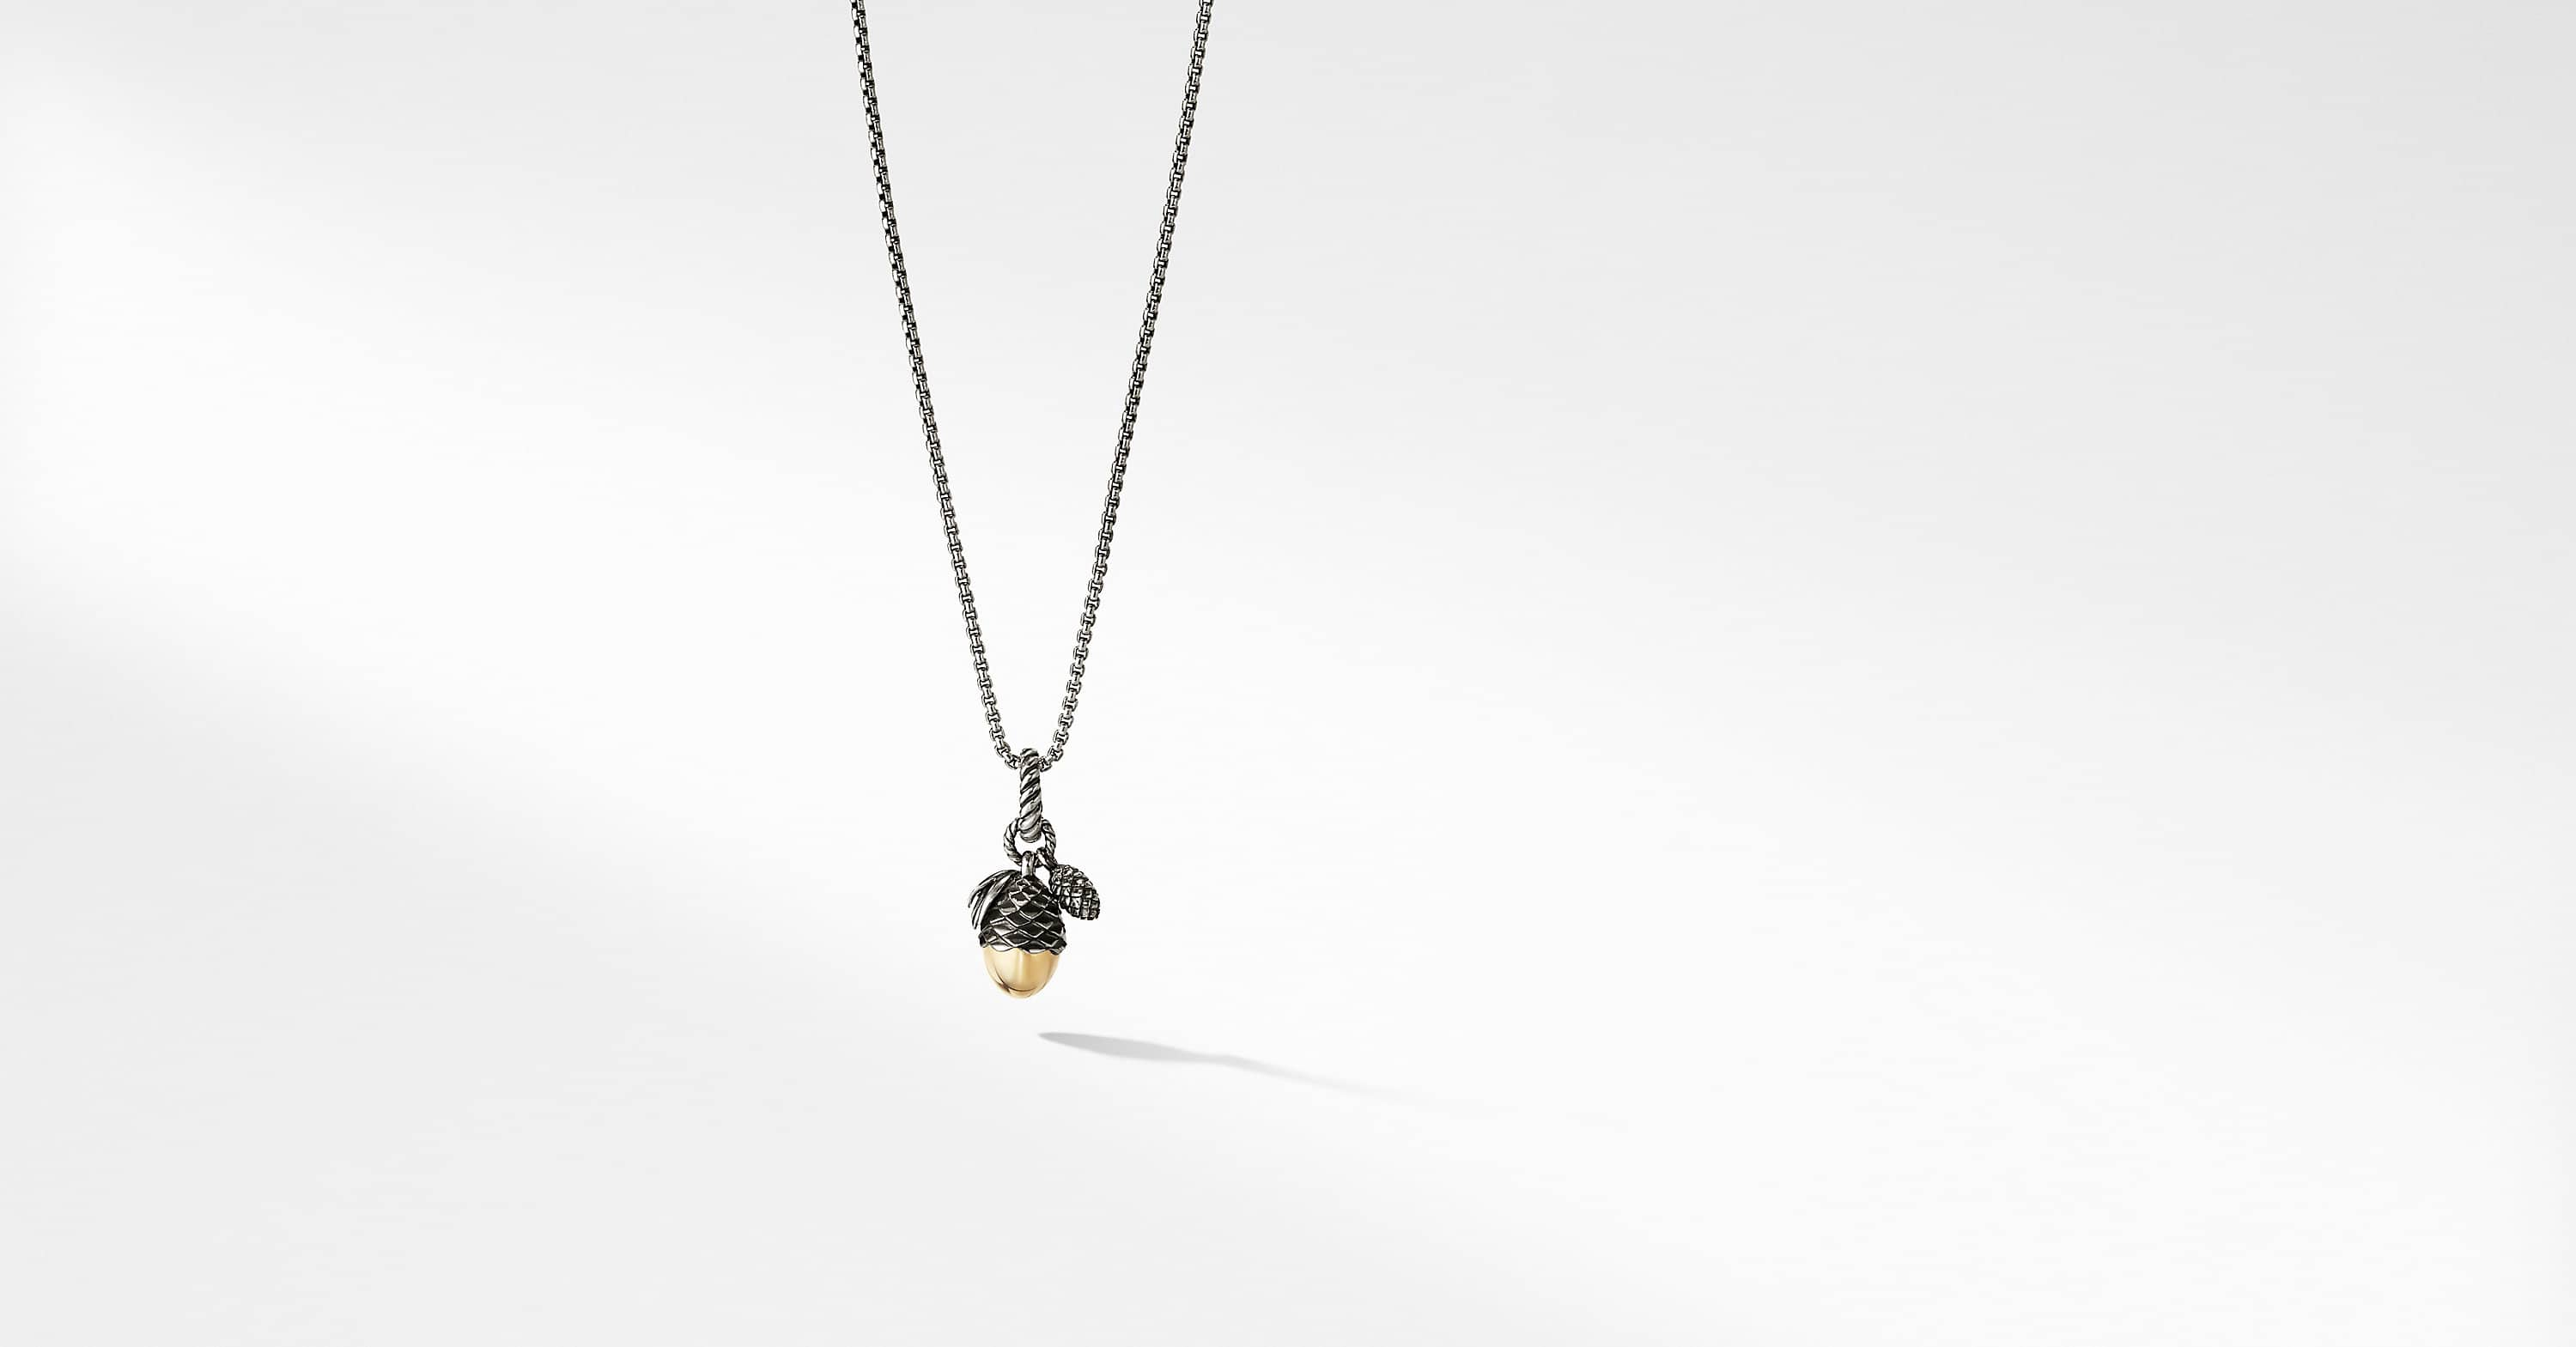 Pine Cone Amulet with 18K Yellow Gold